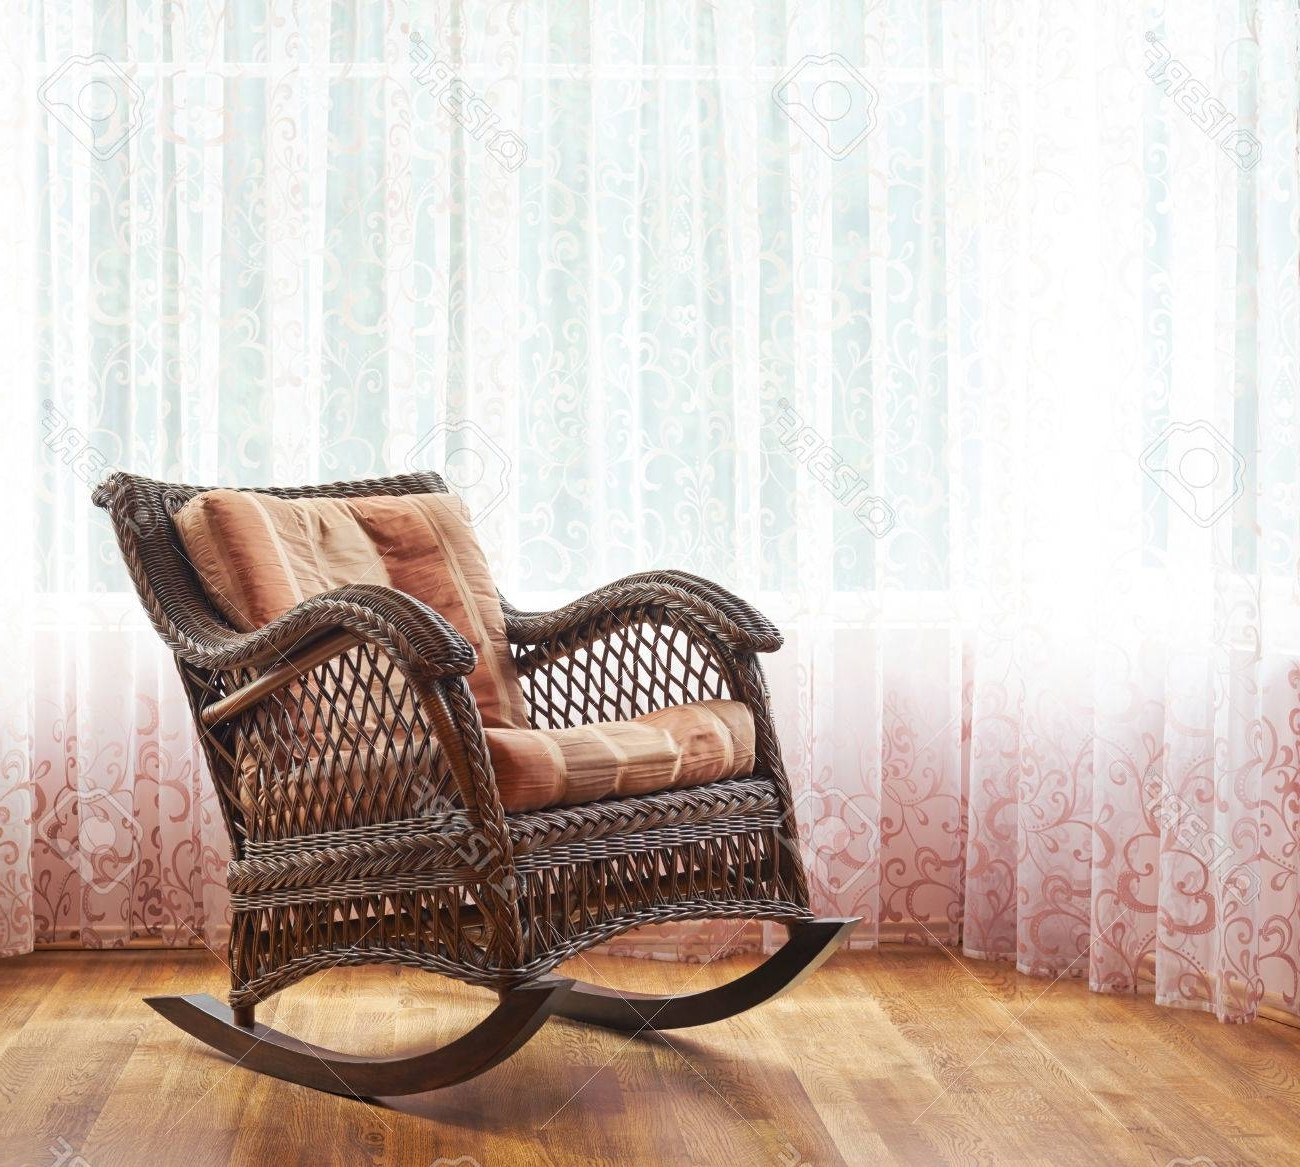 2017 Indoor Wicker Rocking Chairs For Brown Wicker Rocking Chair Against The Window's Curtains, Indoor (View 12 of 15)